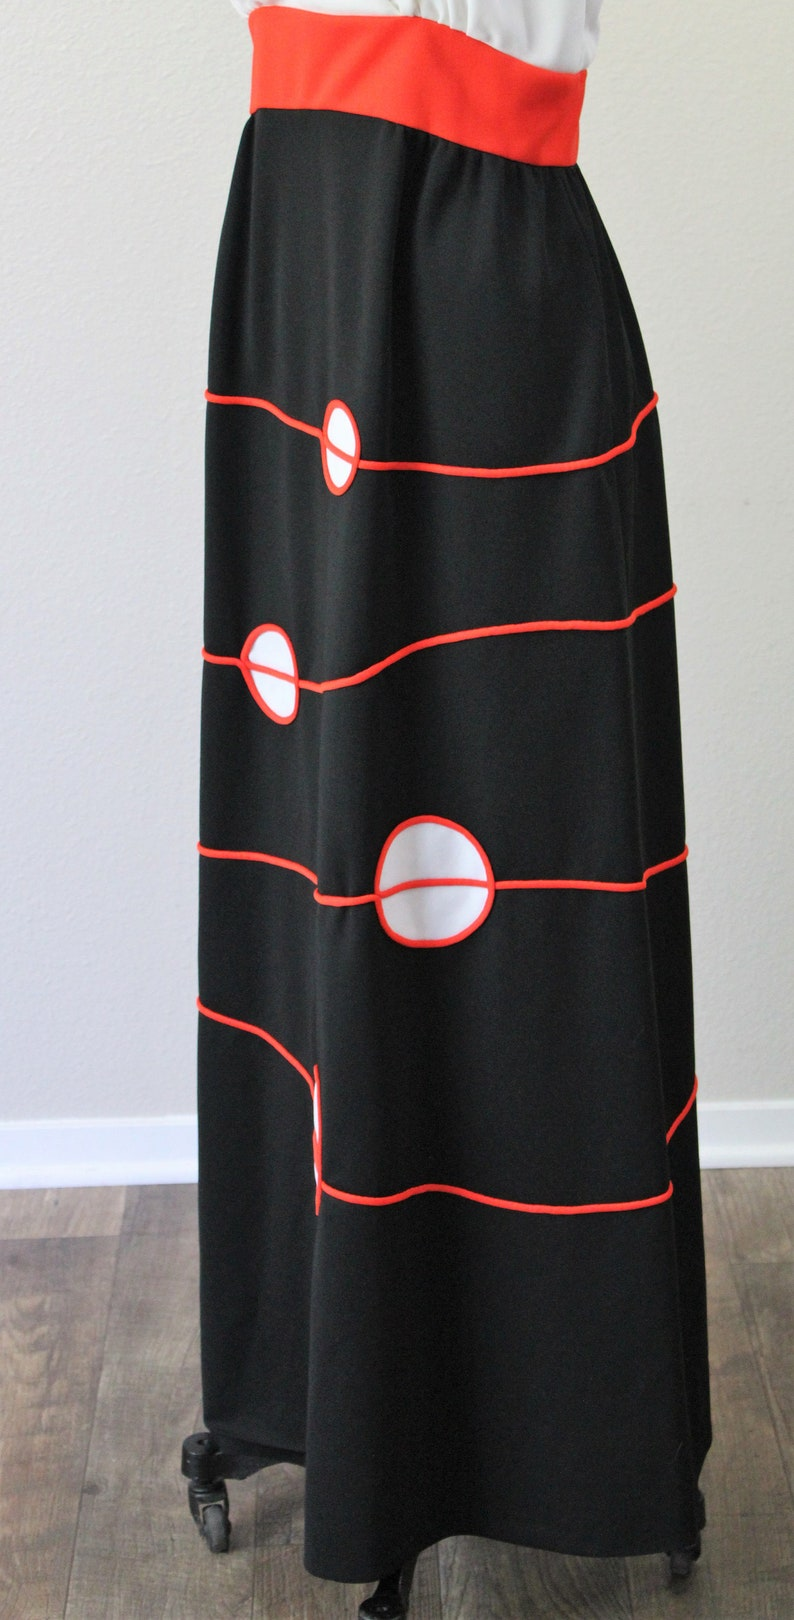 Vintage 1960s 60s Mod Geometric Red white black atomic circles linear lines empire maxi dress op art  modern small  US 4 6